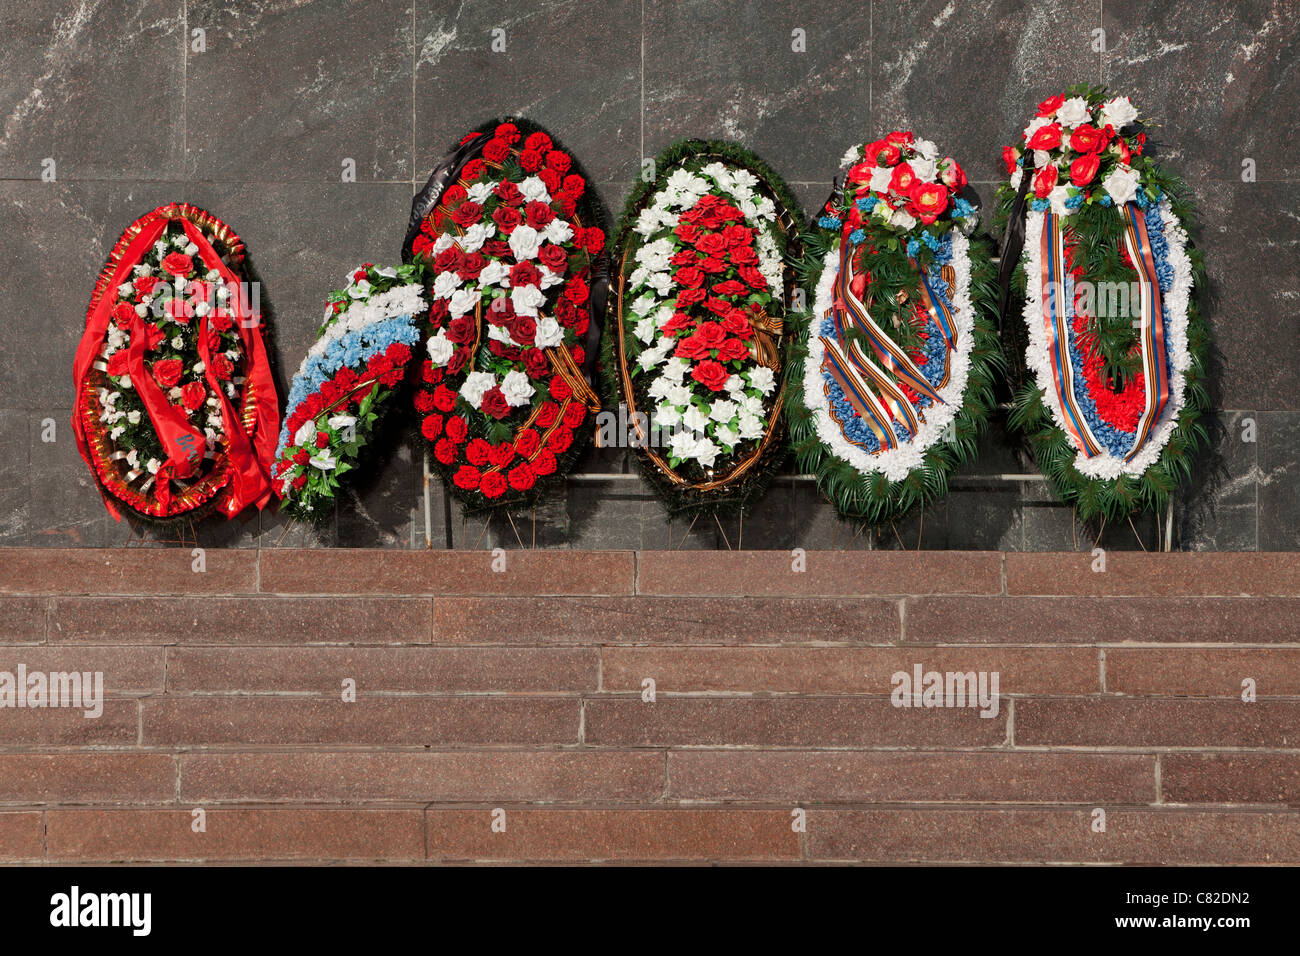 Wreaths for the Soviet World War II victims at Victory Park in Moscow, Russia Stock Photo